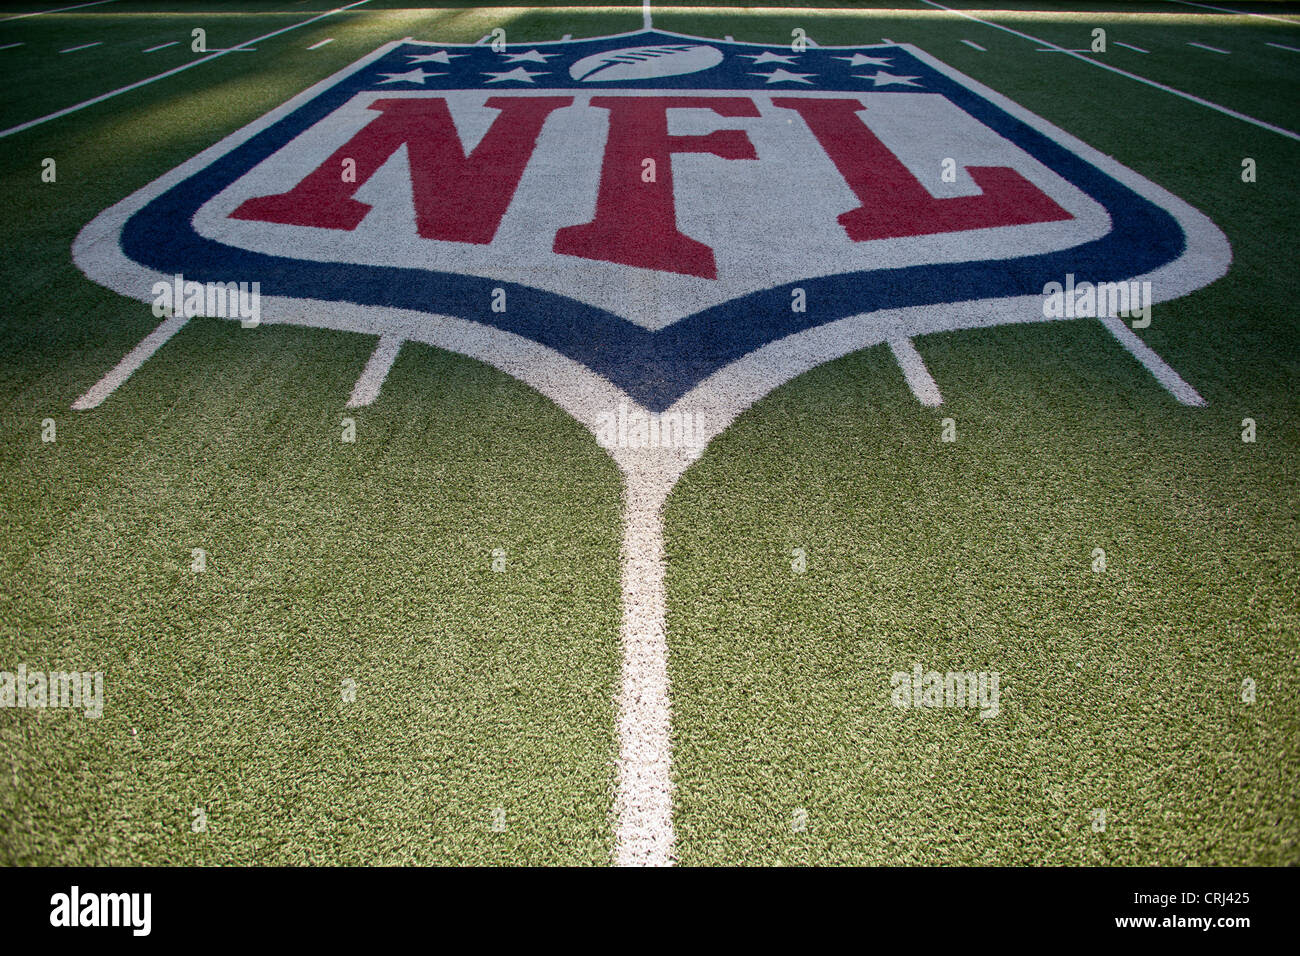 NFL logo on the field in American Football stadium Stock Photo, Royalty Free Image: 48956157 - Alamy